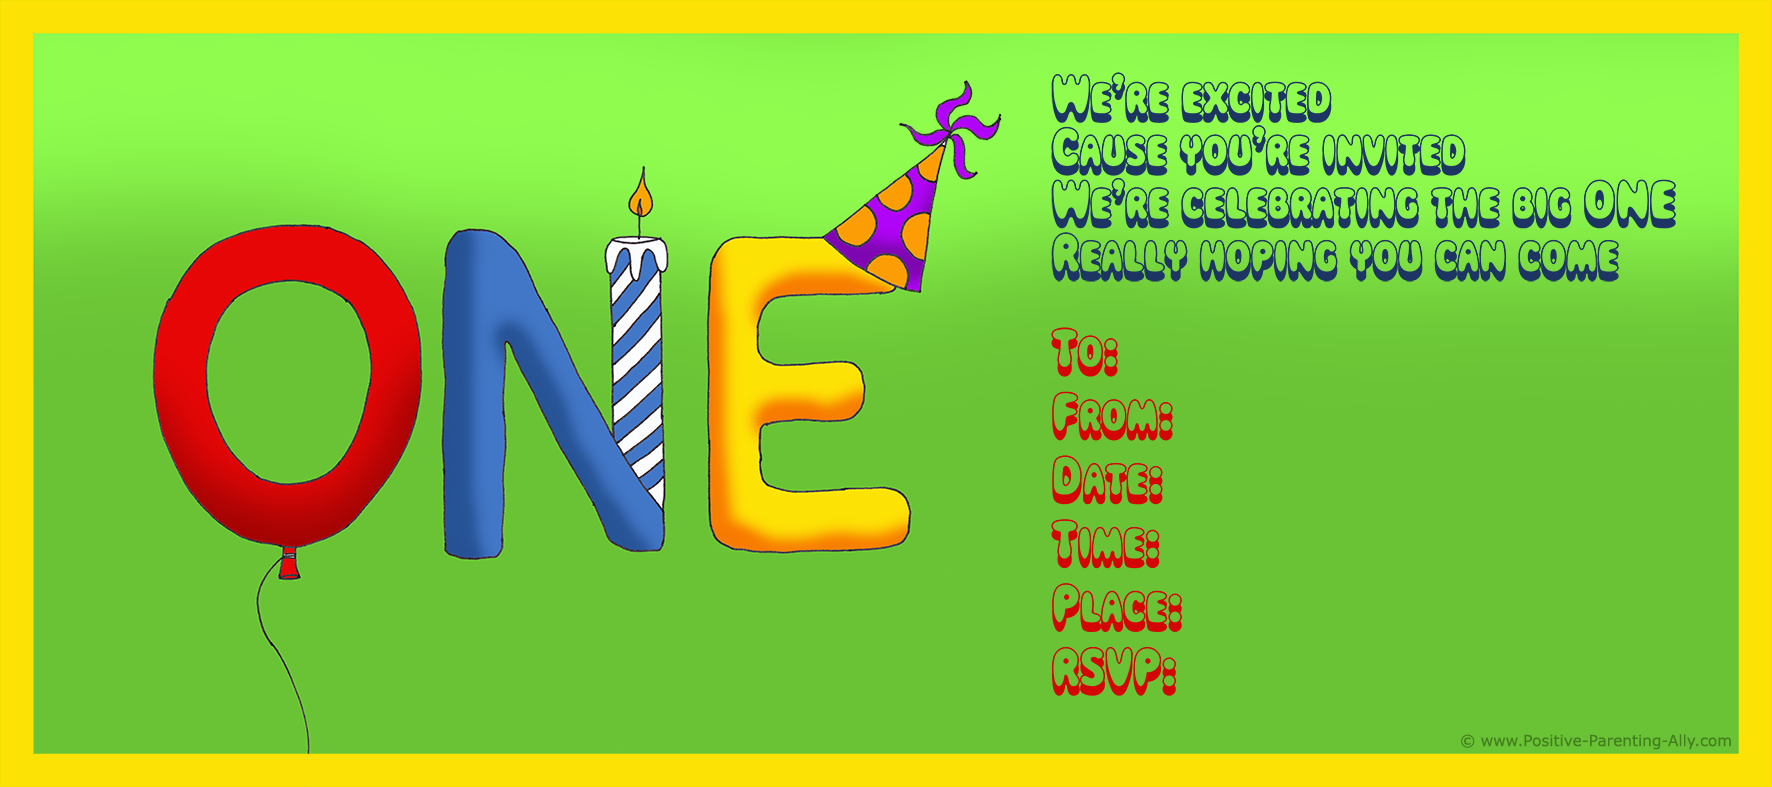 Birthday invitation for the big ONE. All free and printable.